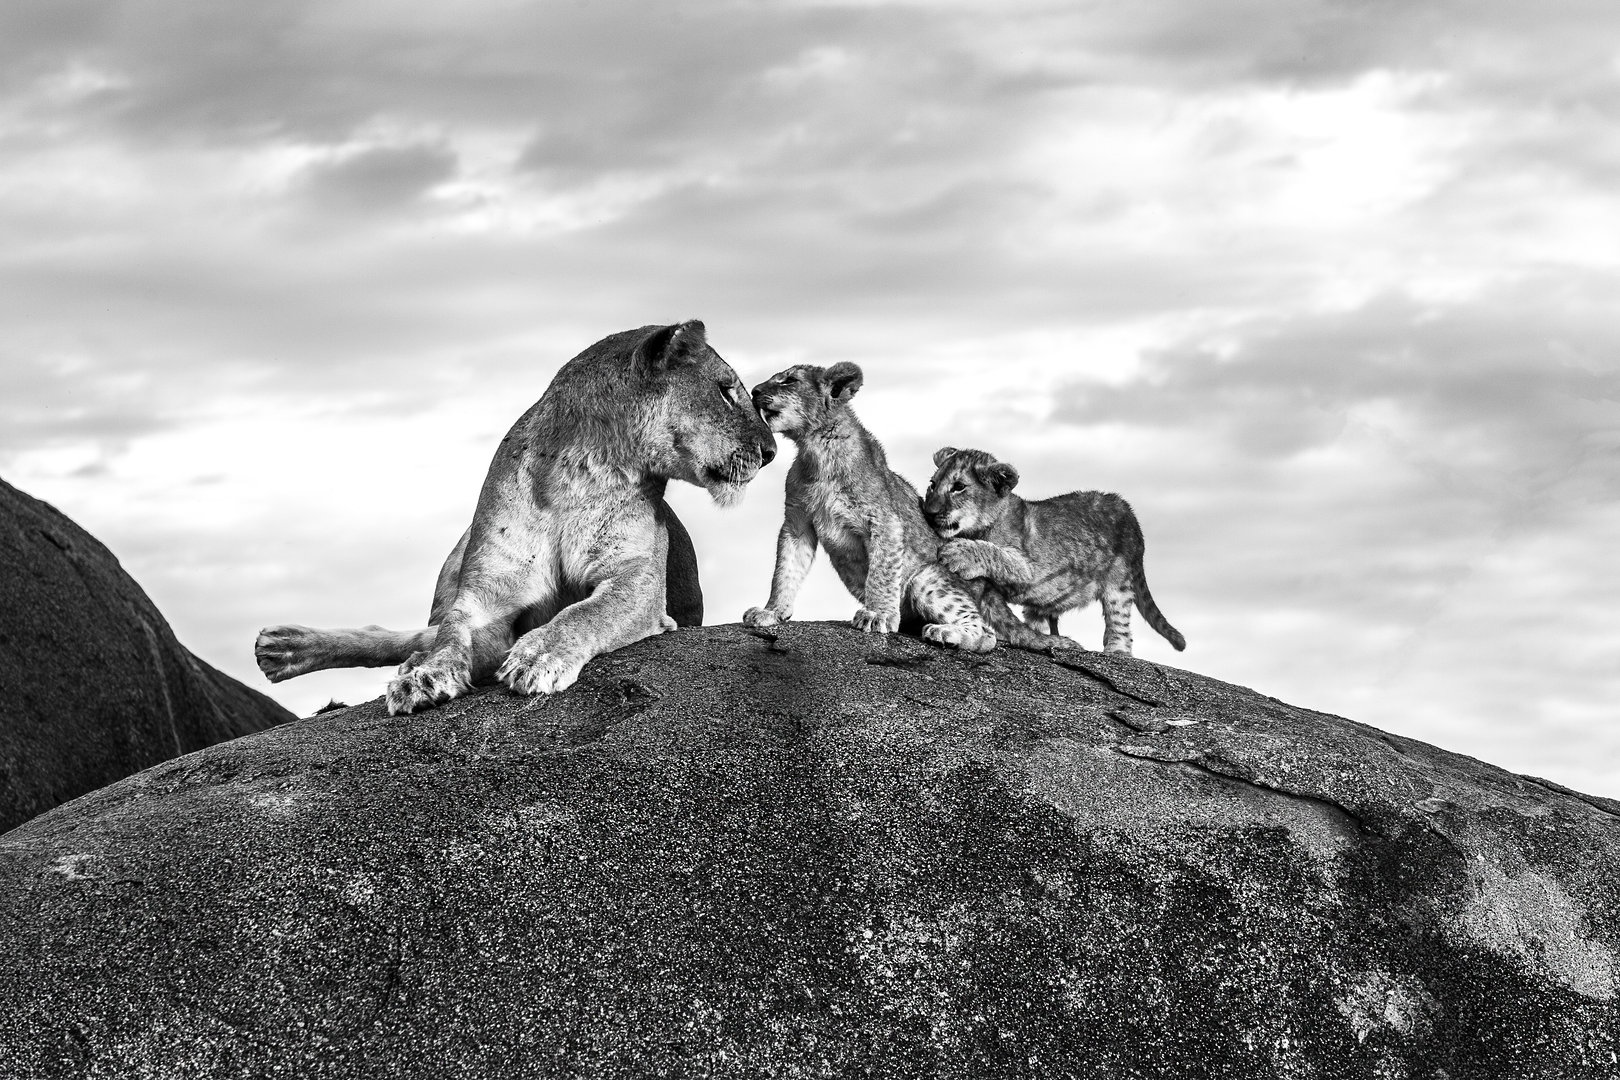 LIONESS AND CUBS ON KOPJE